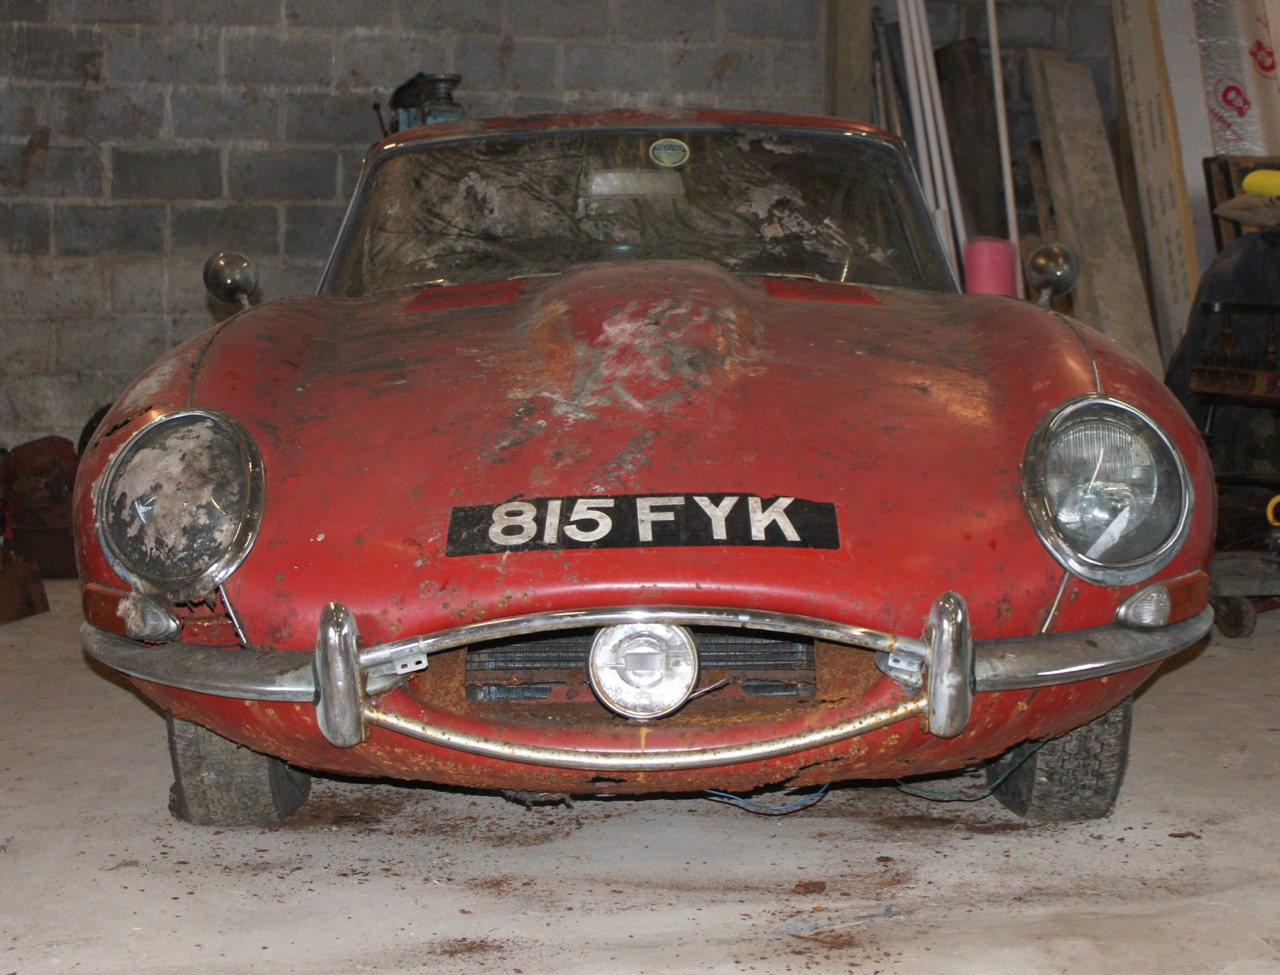 1963 Jaguar E-type originally owned by designers of The Beatles logo | Coys photos